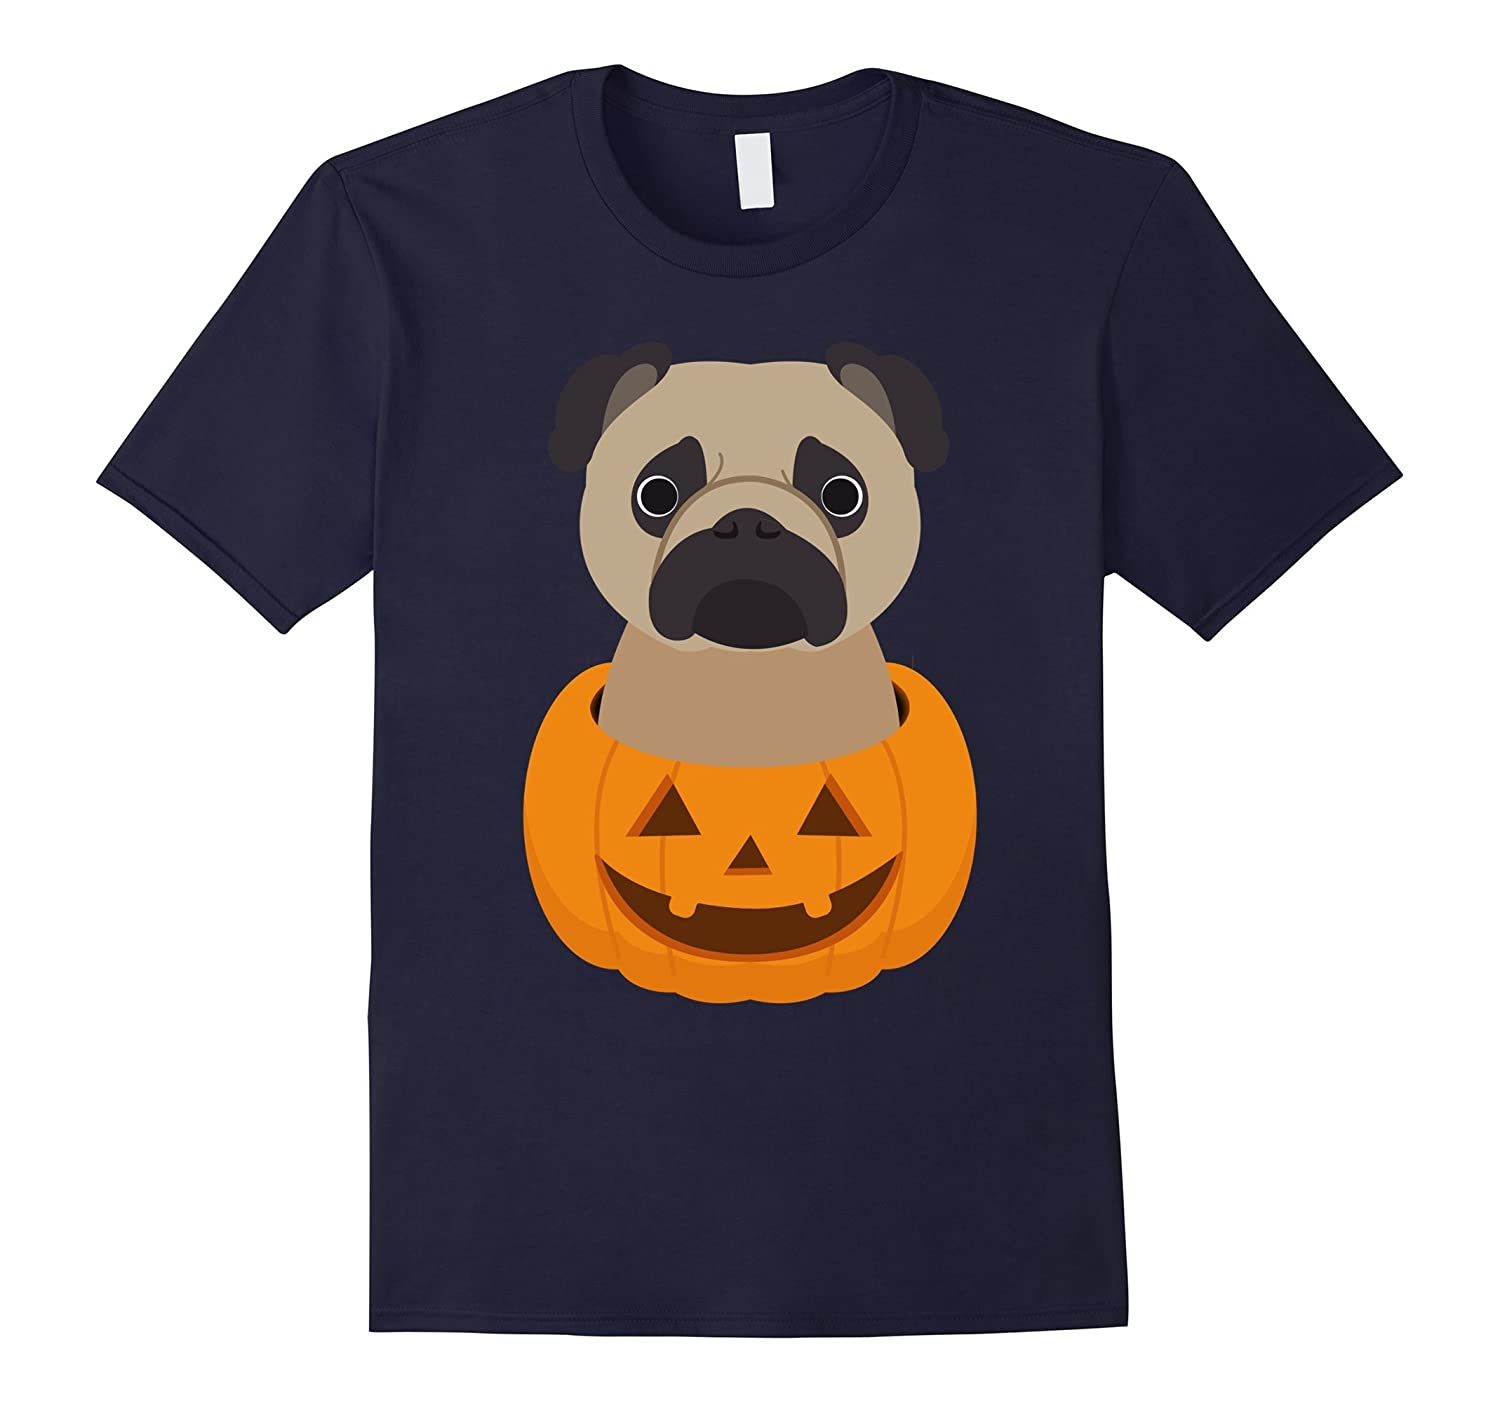 Halloween costume gifts Pug dog lover t shirt-FL